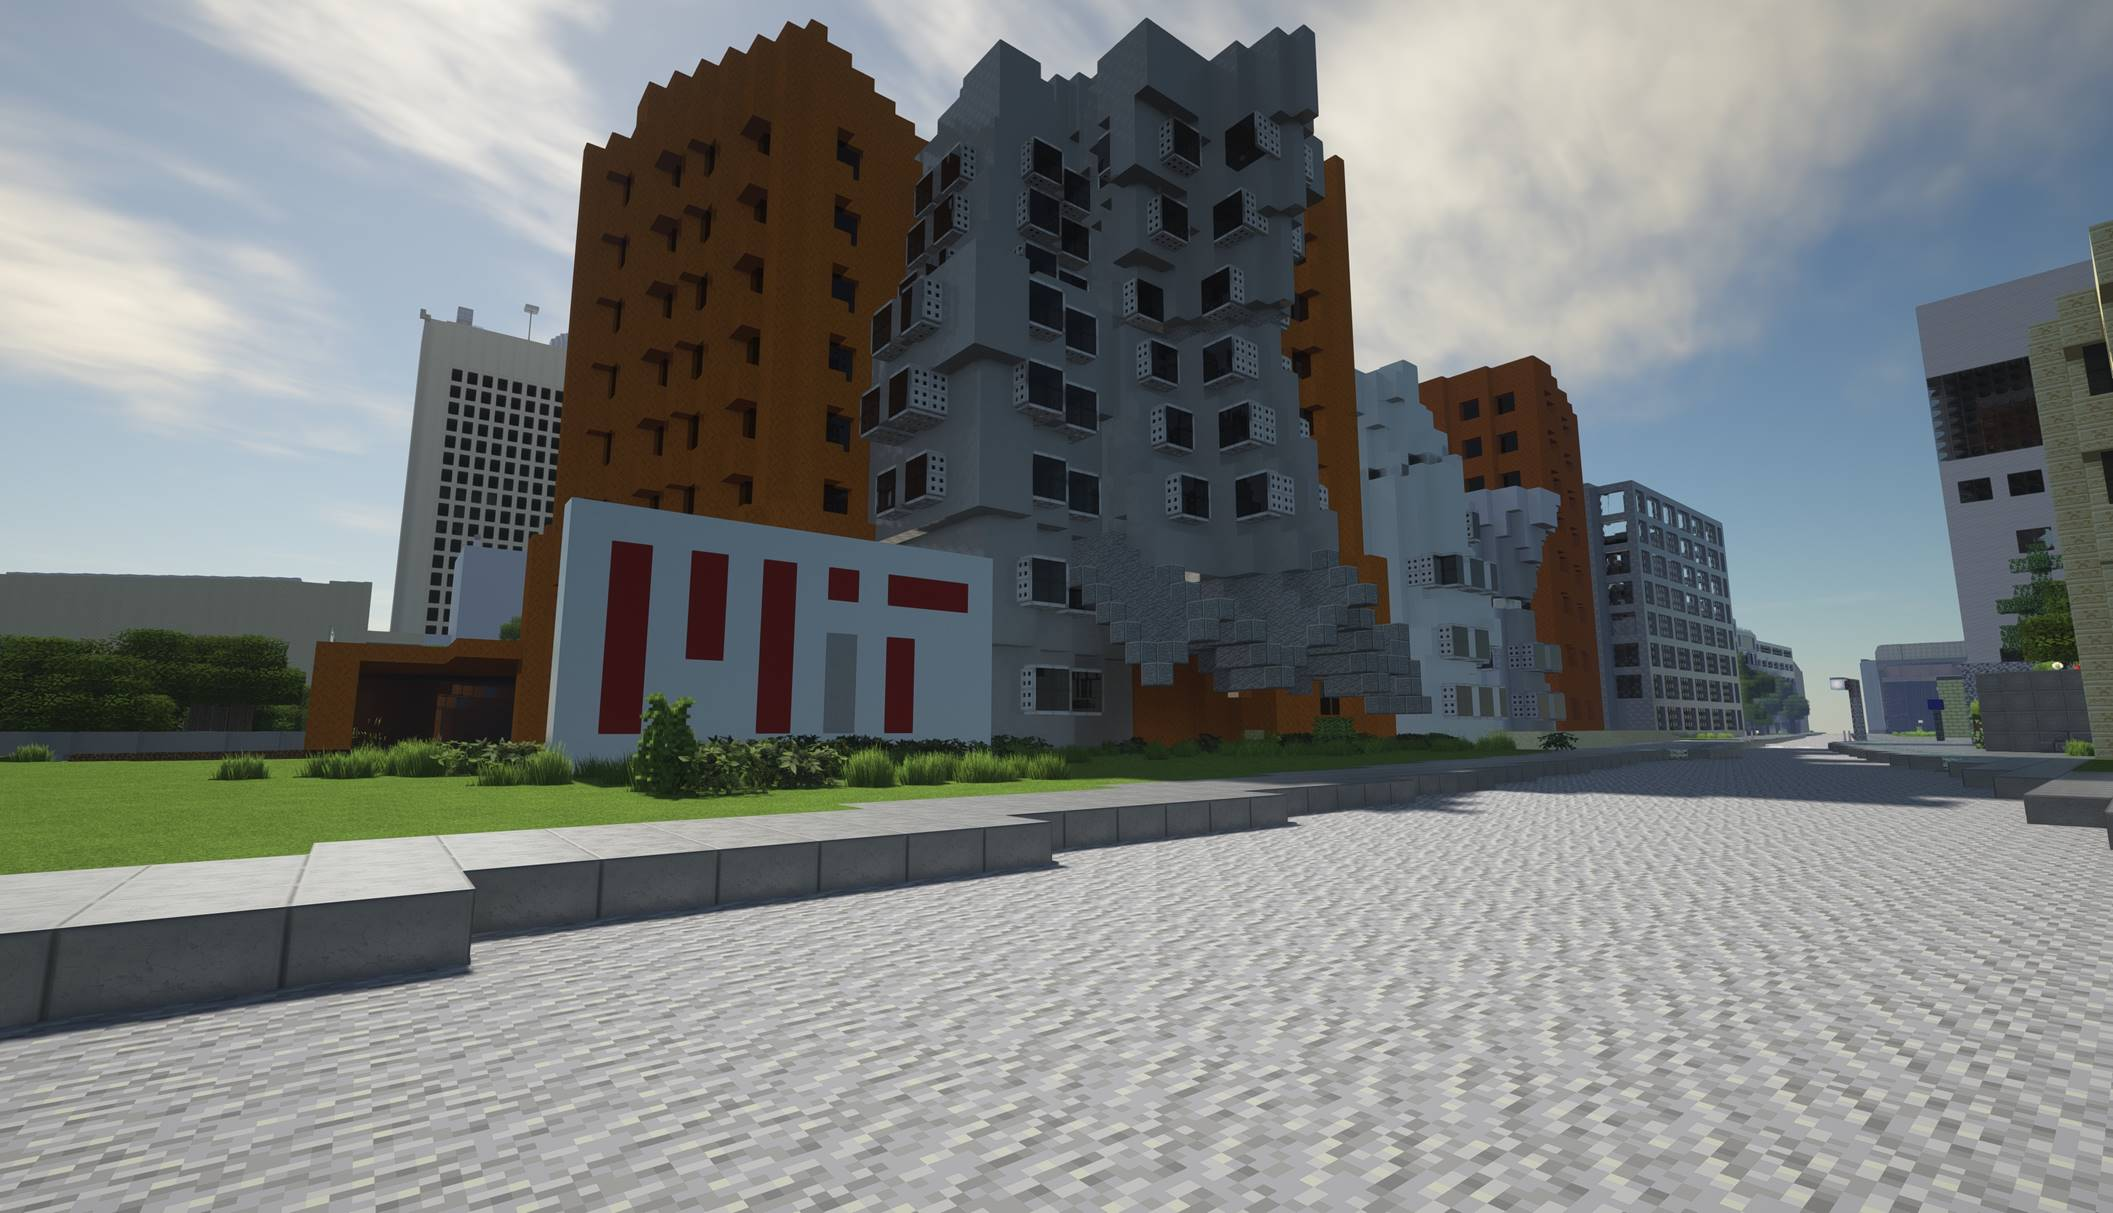 MIT Out-MITs Itself; Builds Full Scale Campus Replica on Minecraft